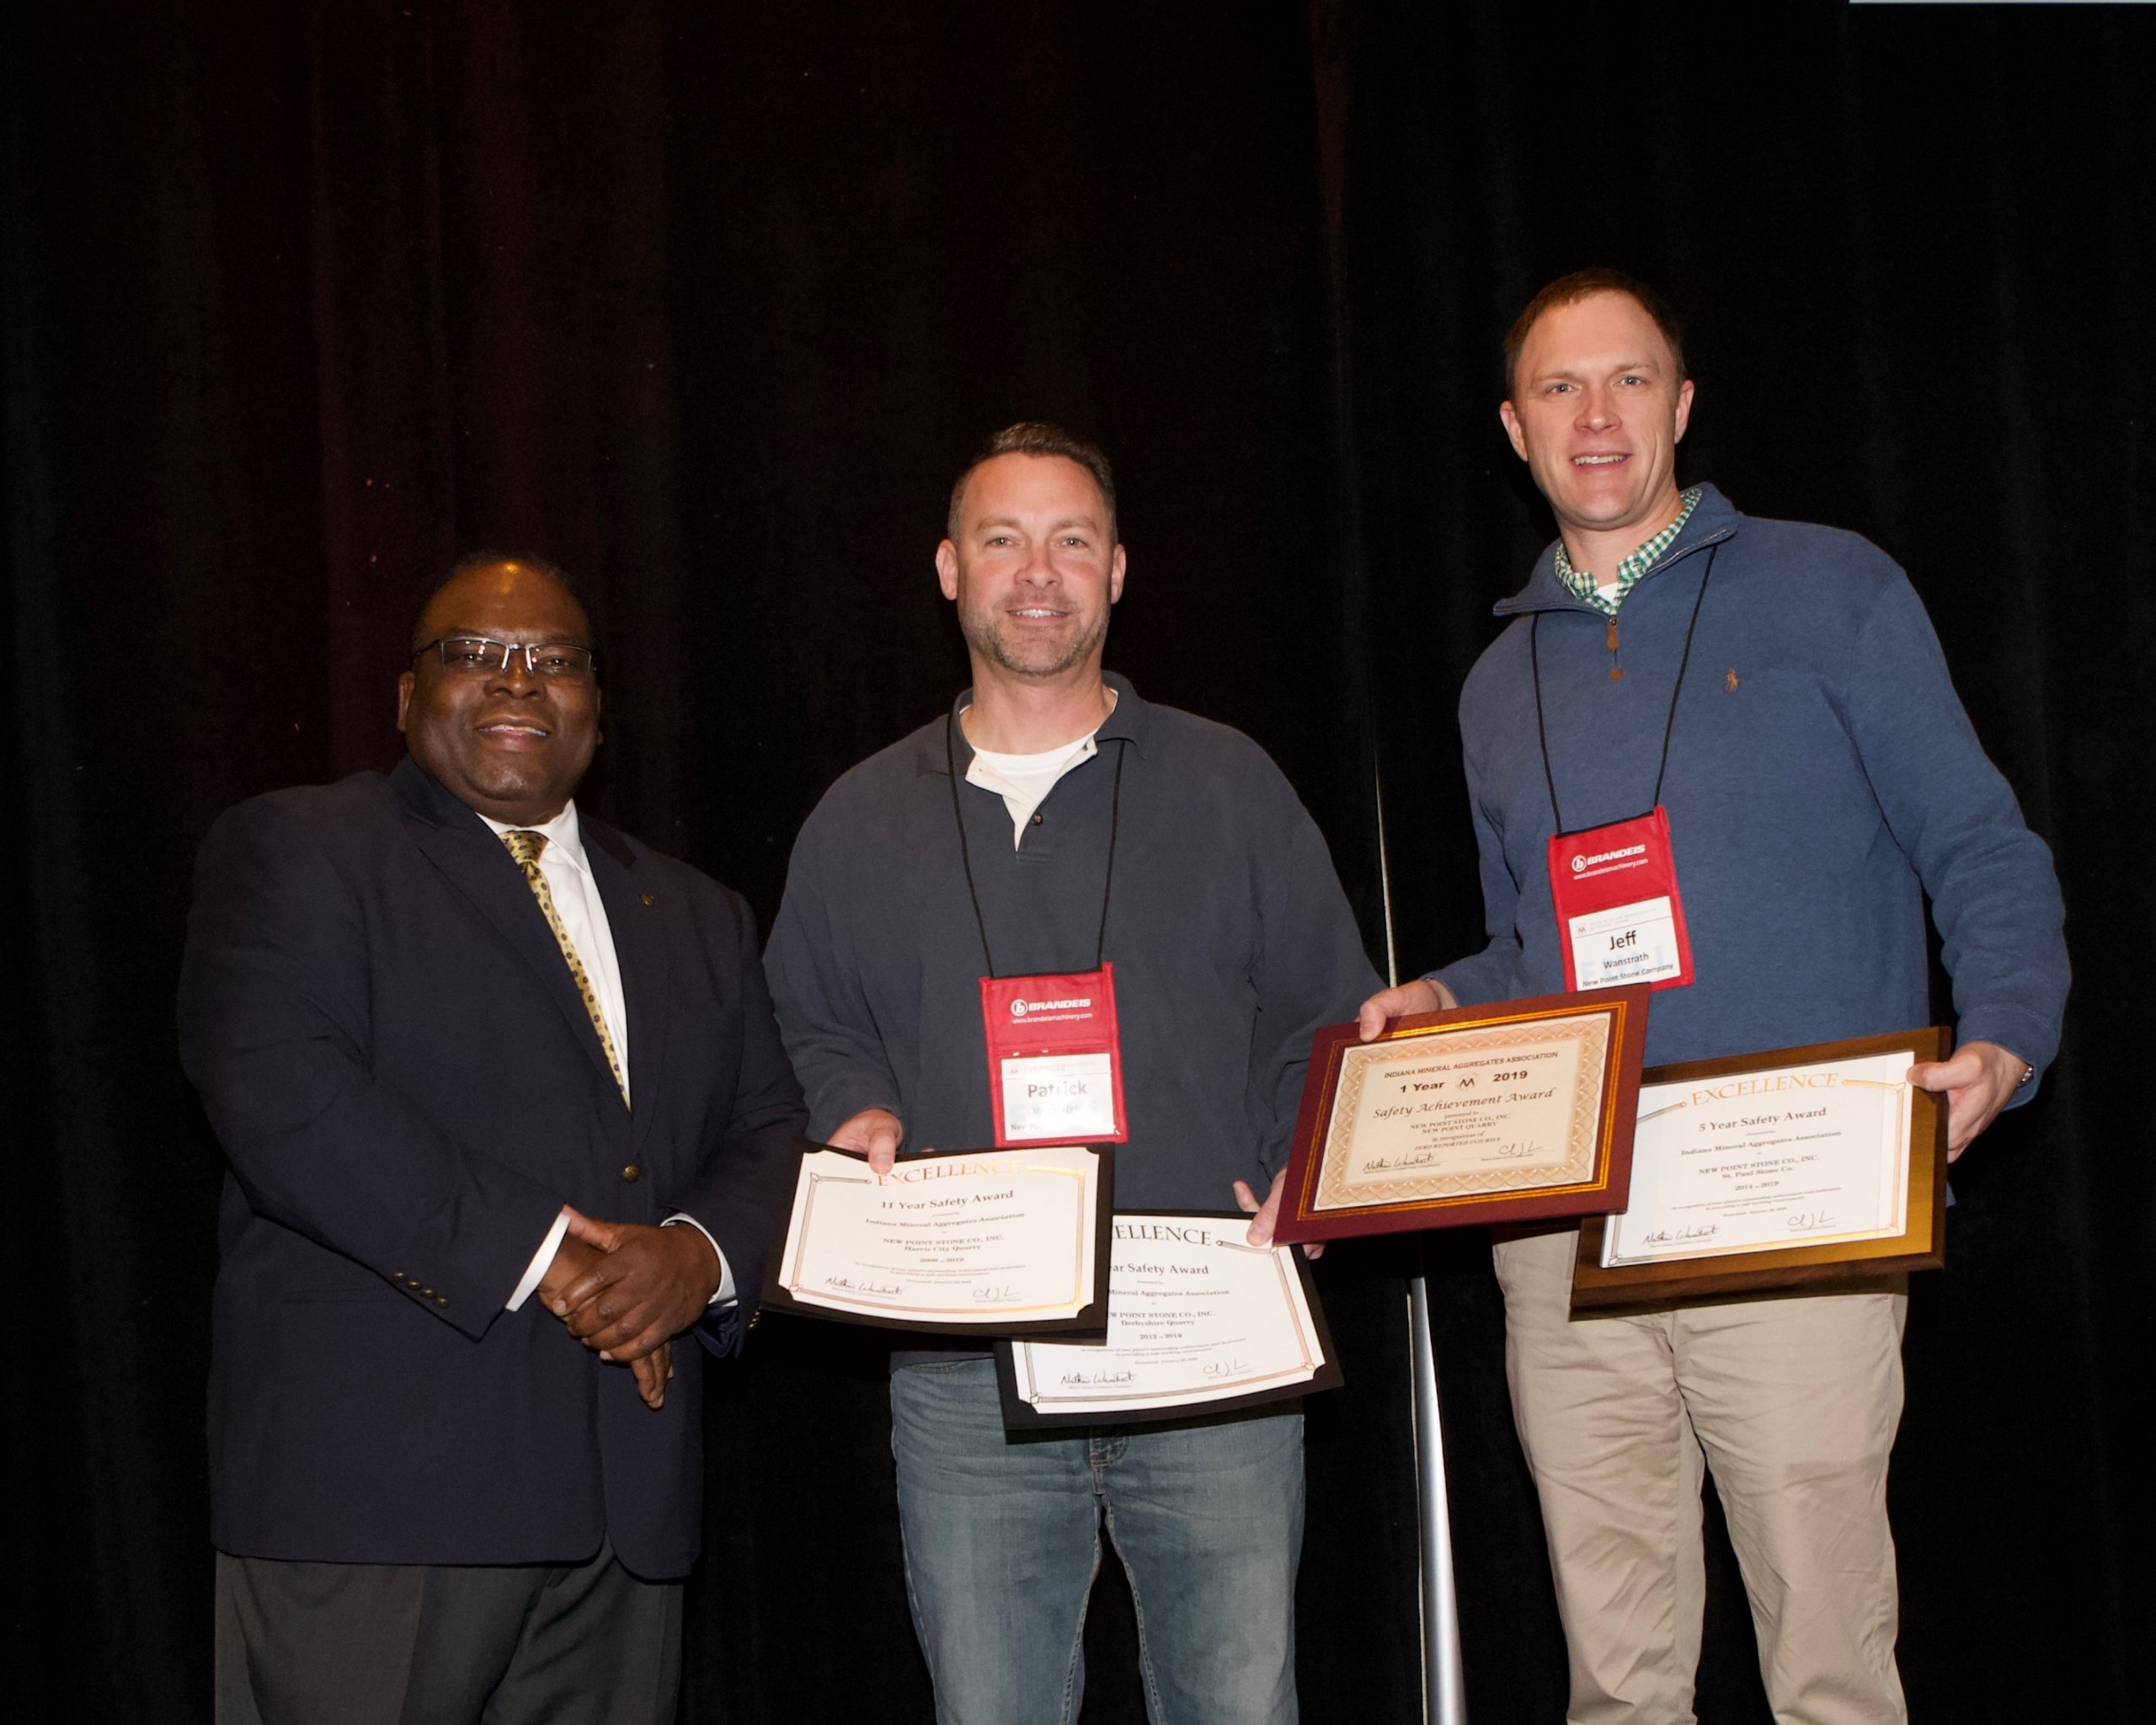 2020 IMAA Awards - 2019 Safety Awards